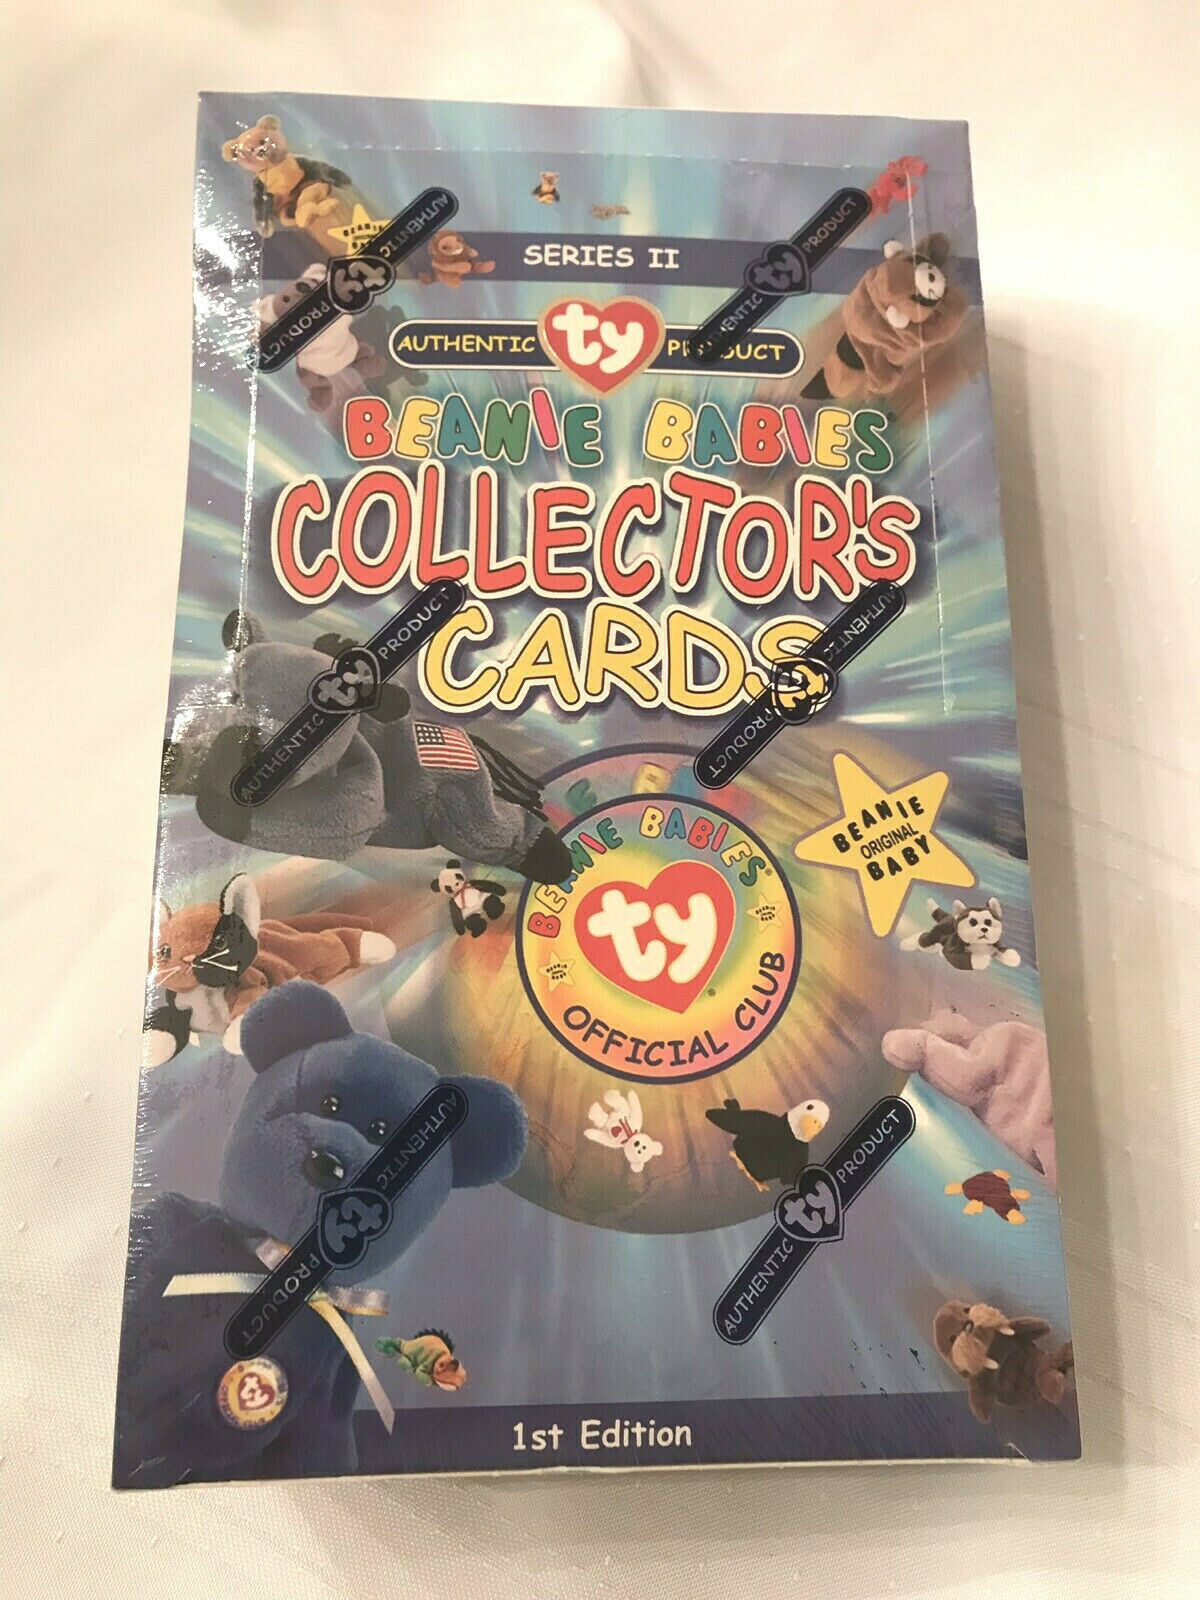 TY BEANIE BABIES 1st Edition Series 2 Collectors Cards Factory Sealed BOX